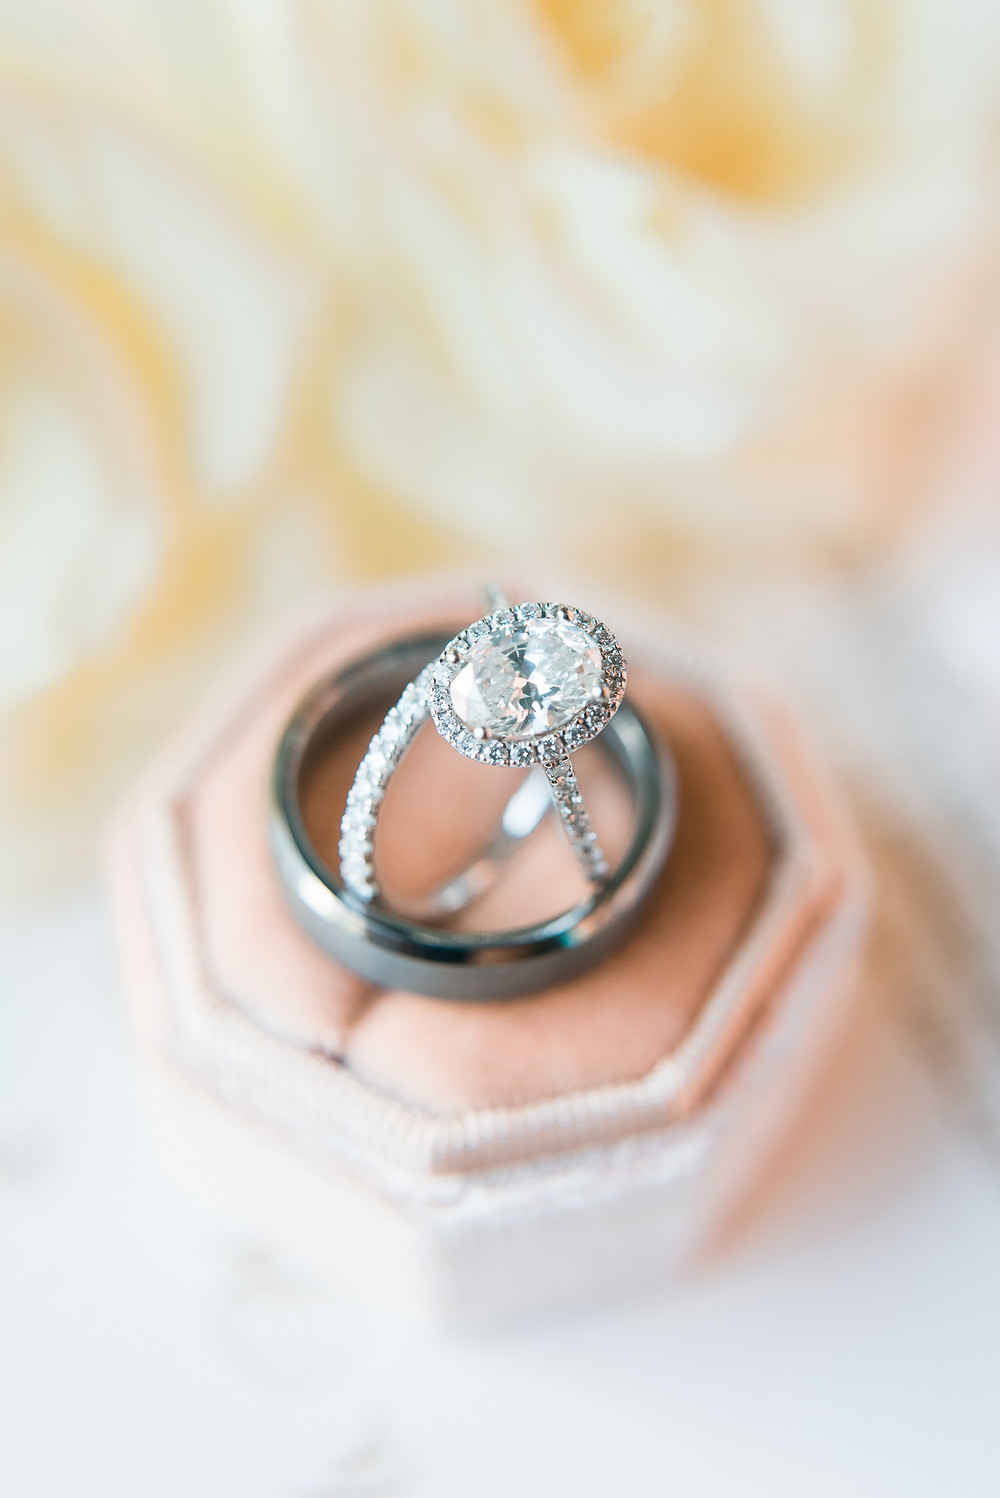 DIAMOND RINGS WEDDING RINGS